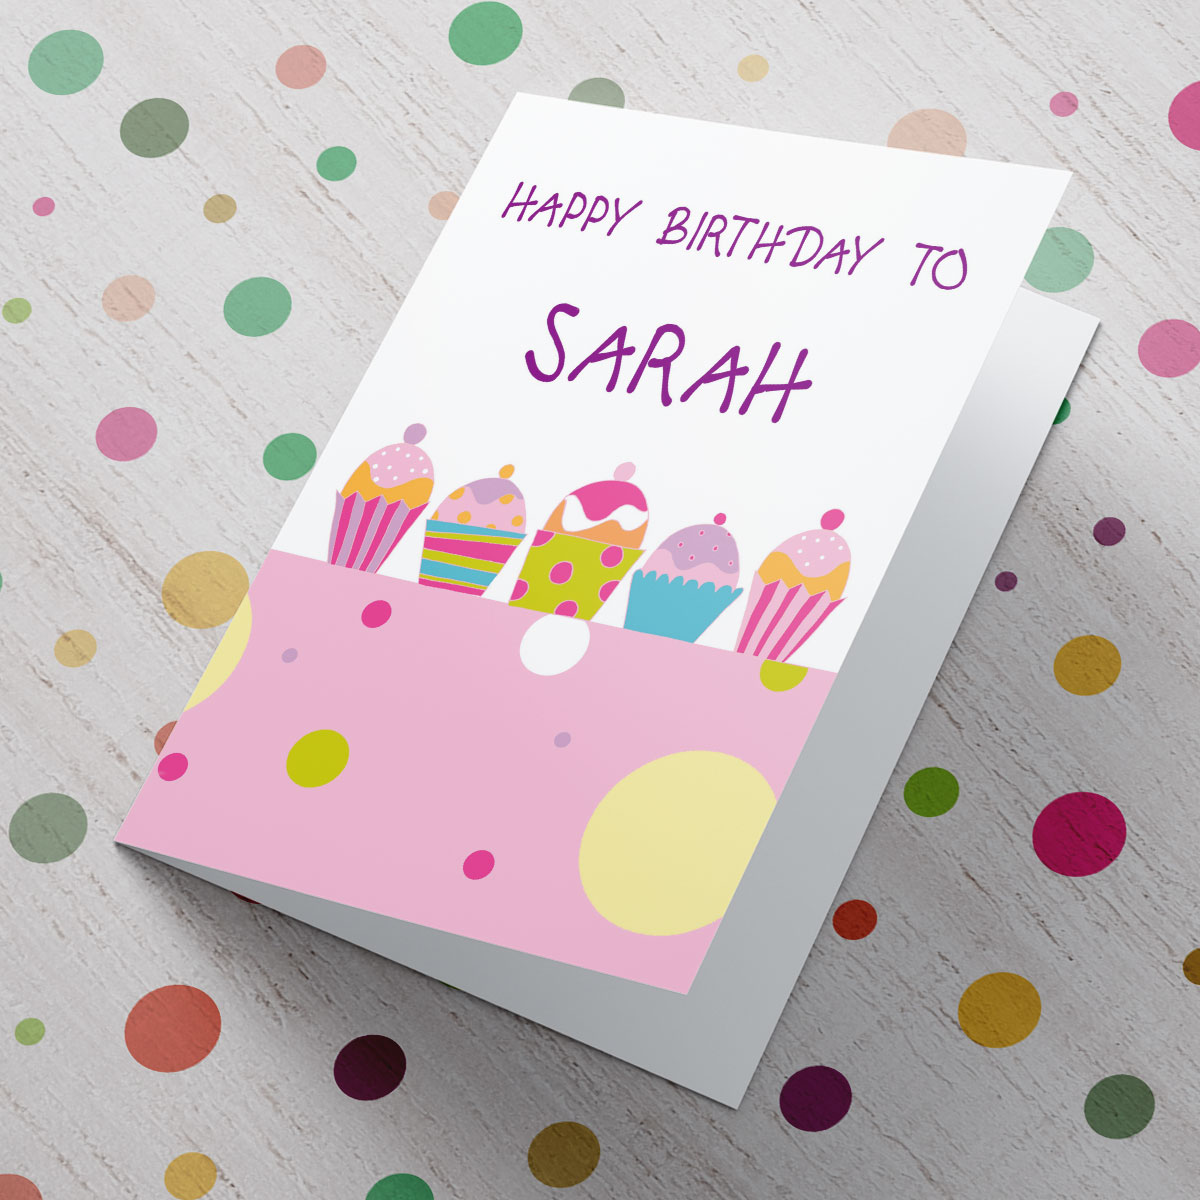 personalised photo birthday cards uk ; fullsize_a